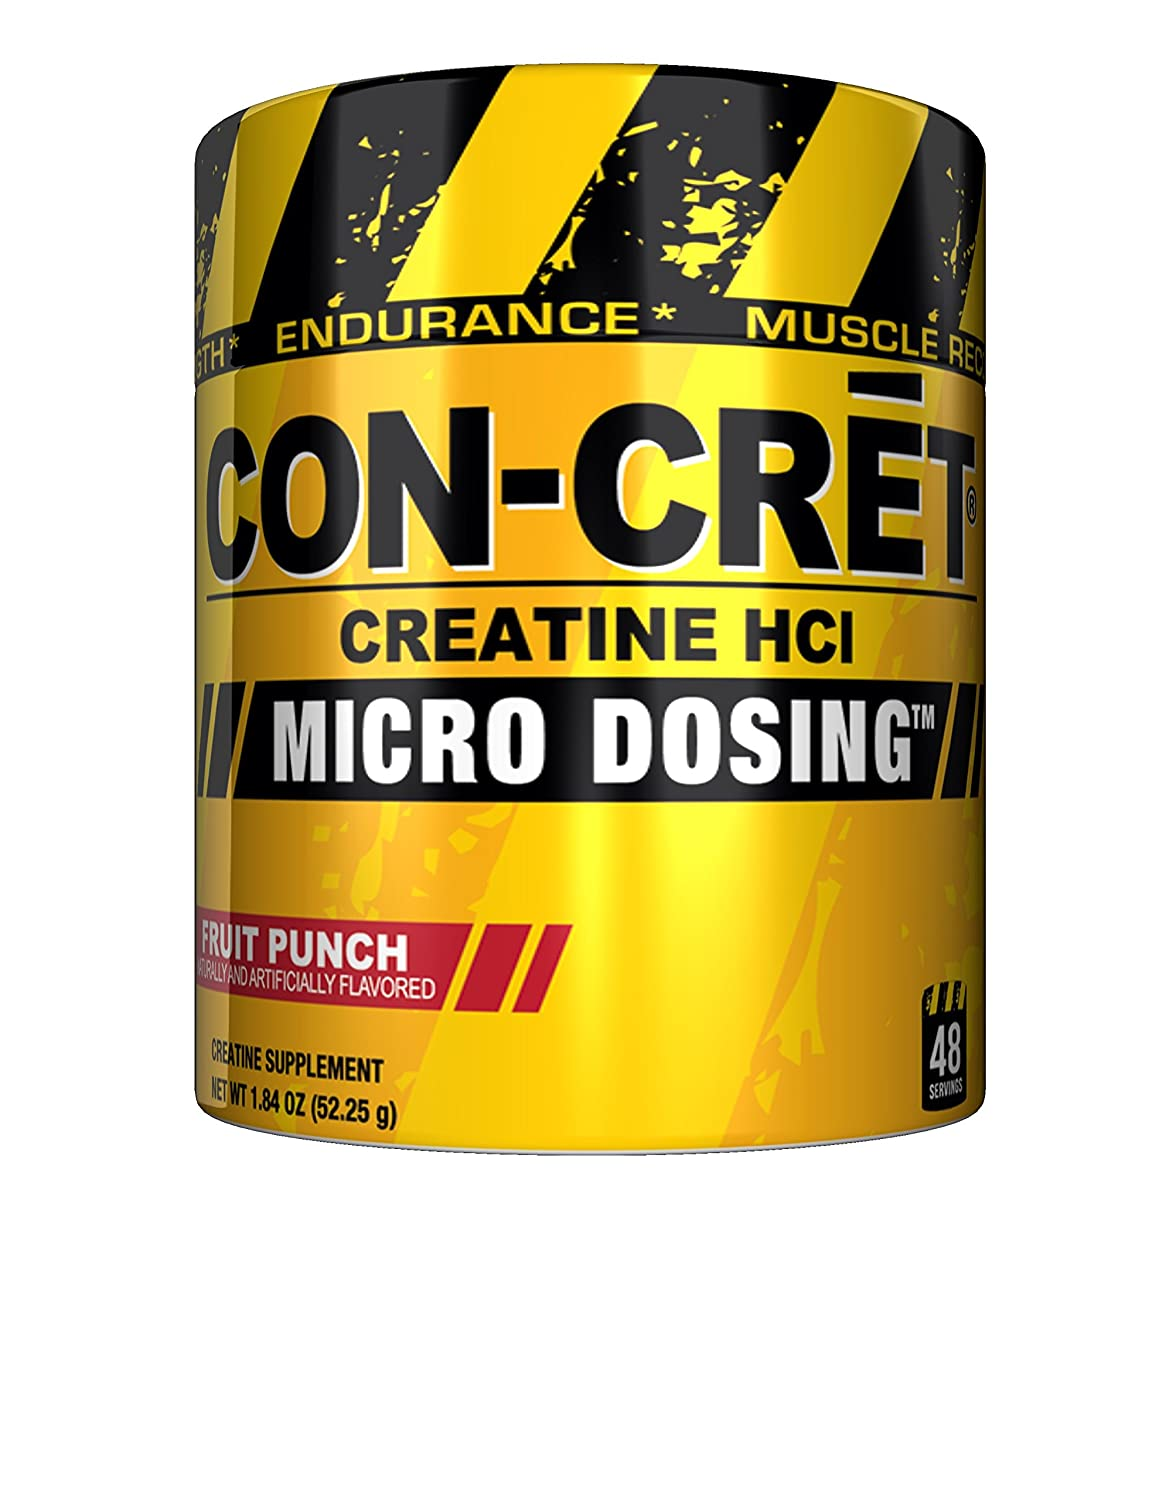 CON-CRET Creatine HCI Micro-Dosing Pre Workout Powder for Muscle Building, Endurance, and Recovery, 48 Servings, Fruit Punch